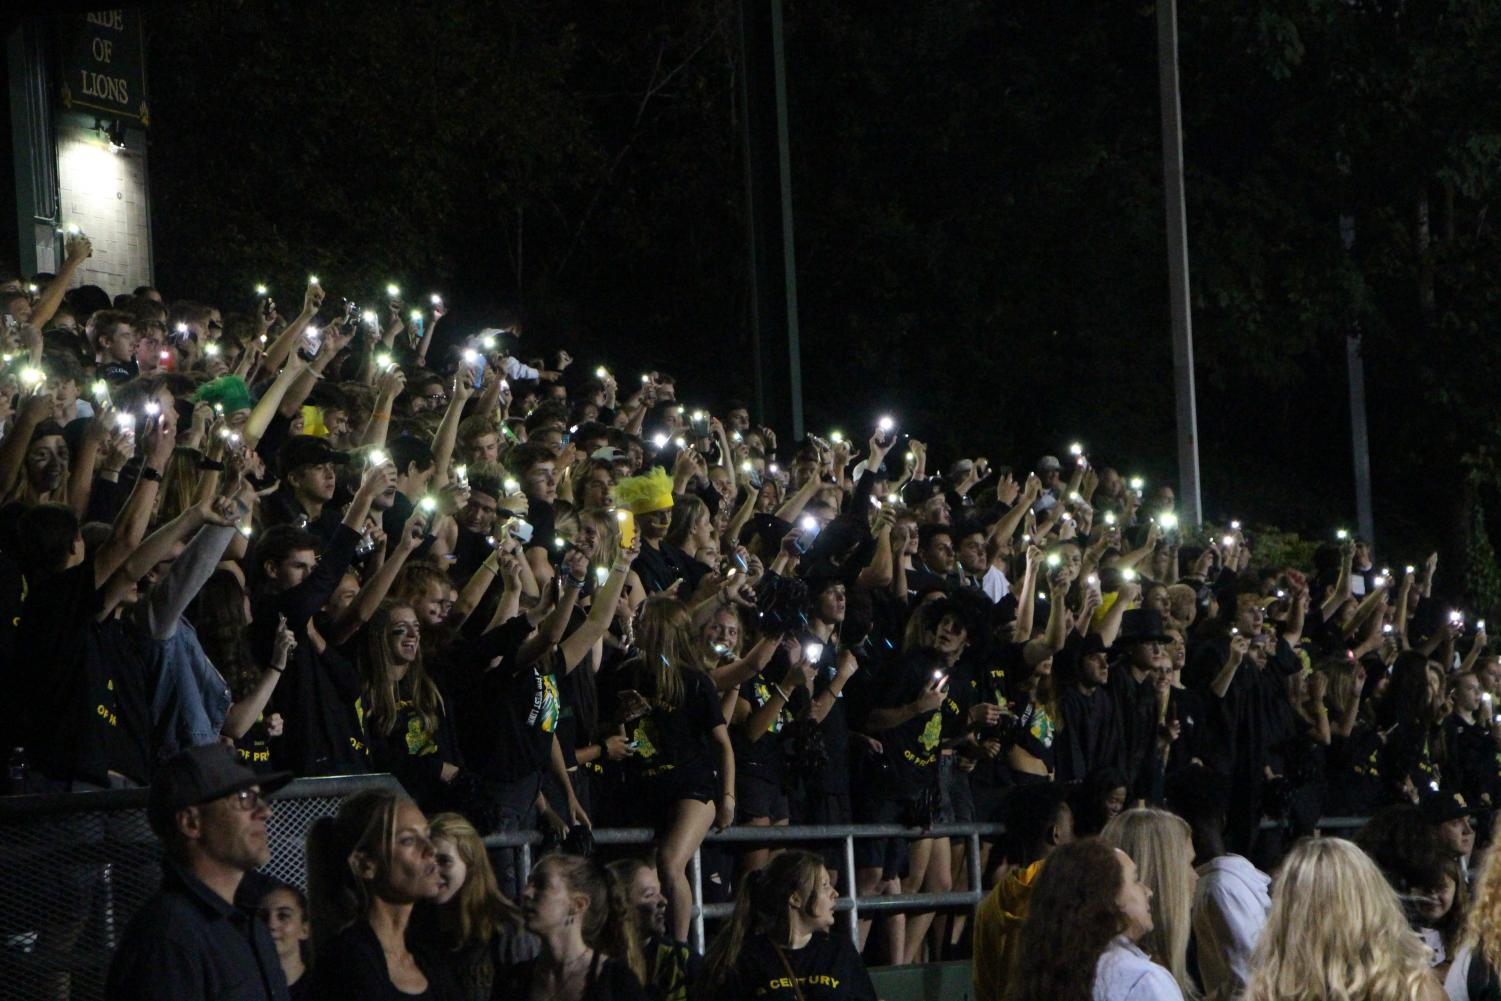 Students+show+support+with+both+cheers+and+their+phones.+